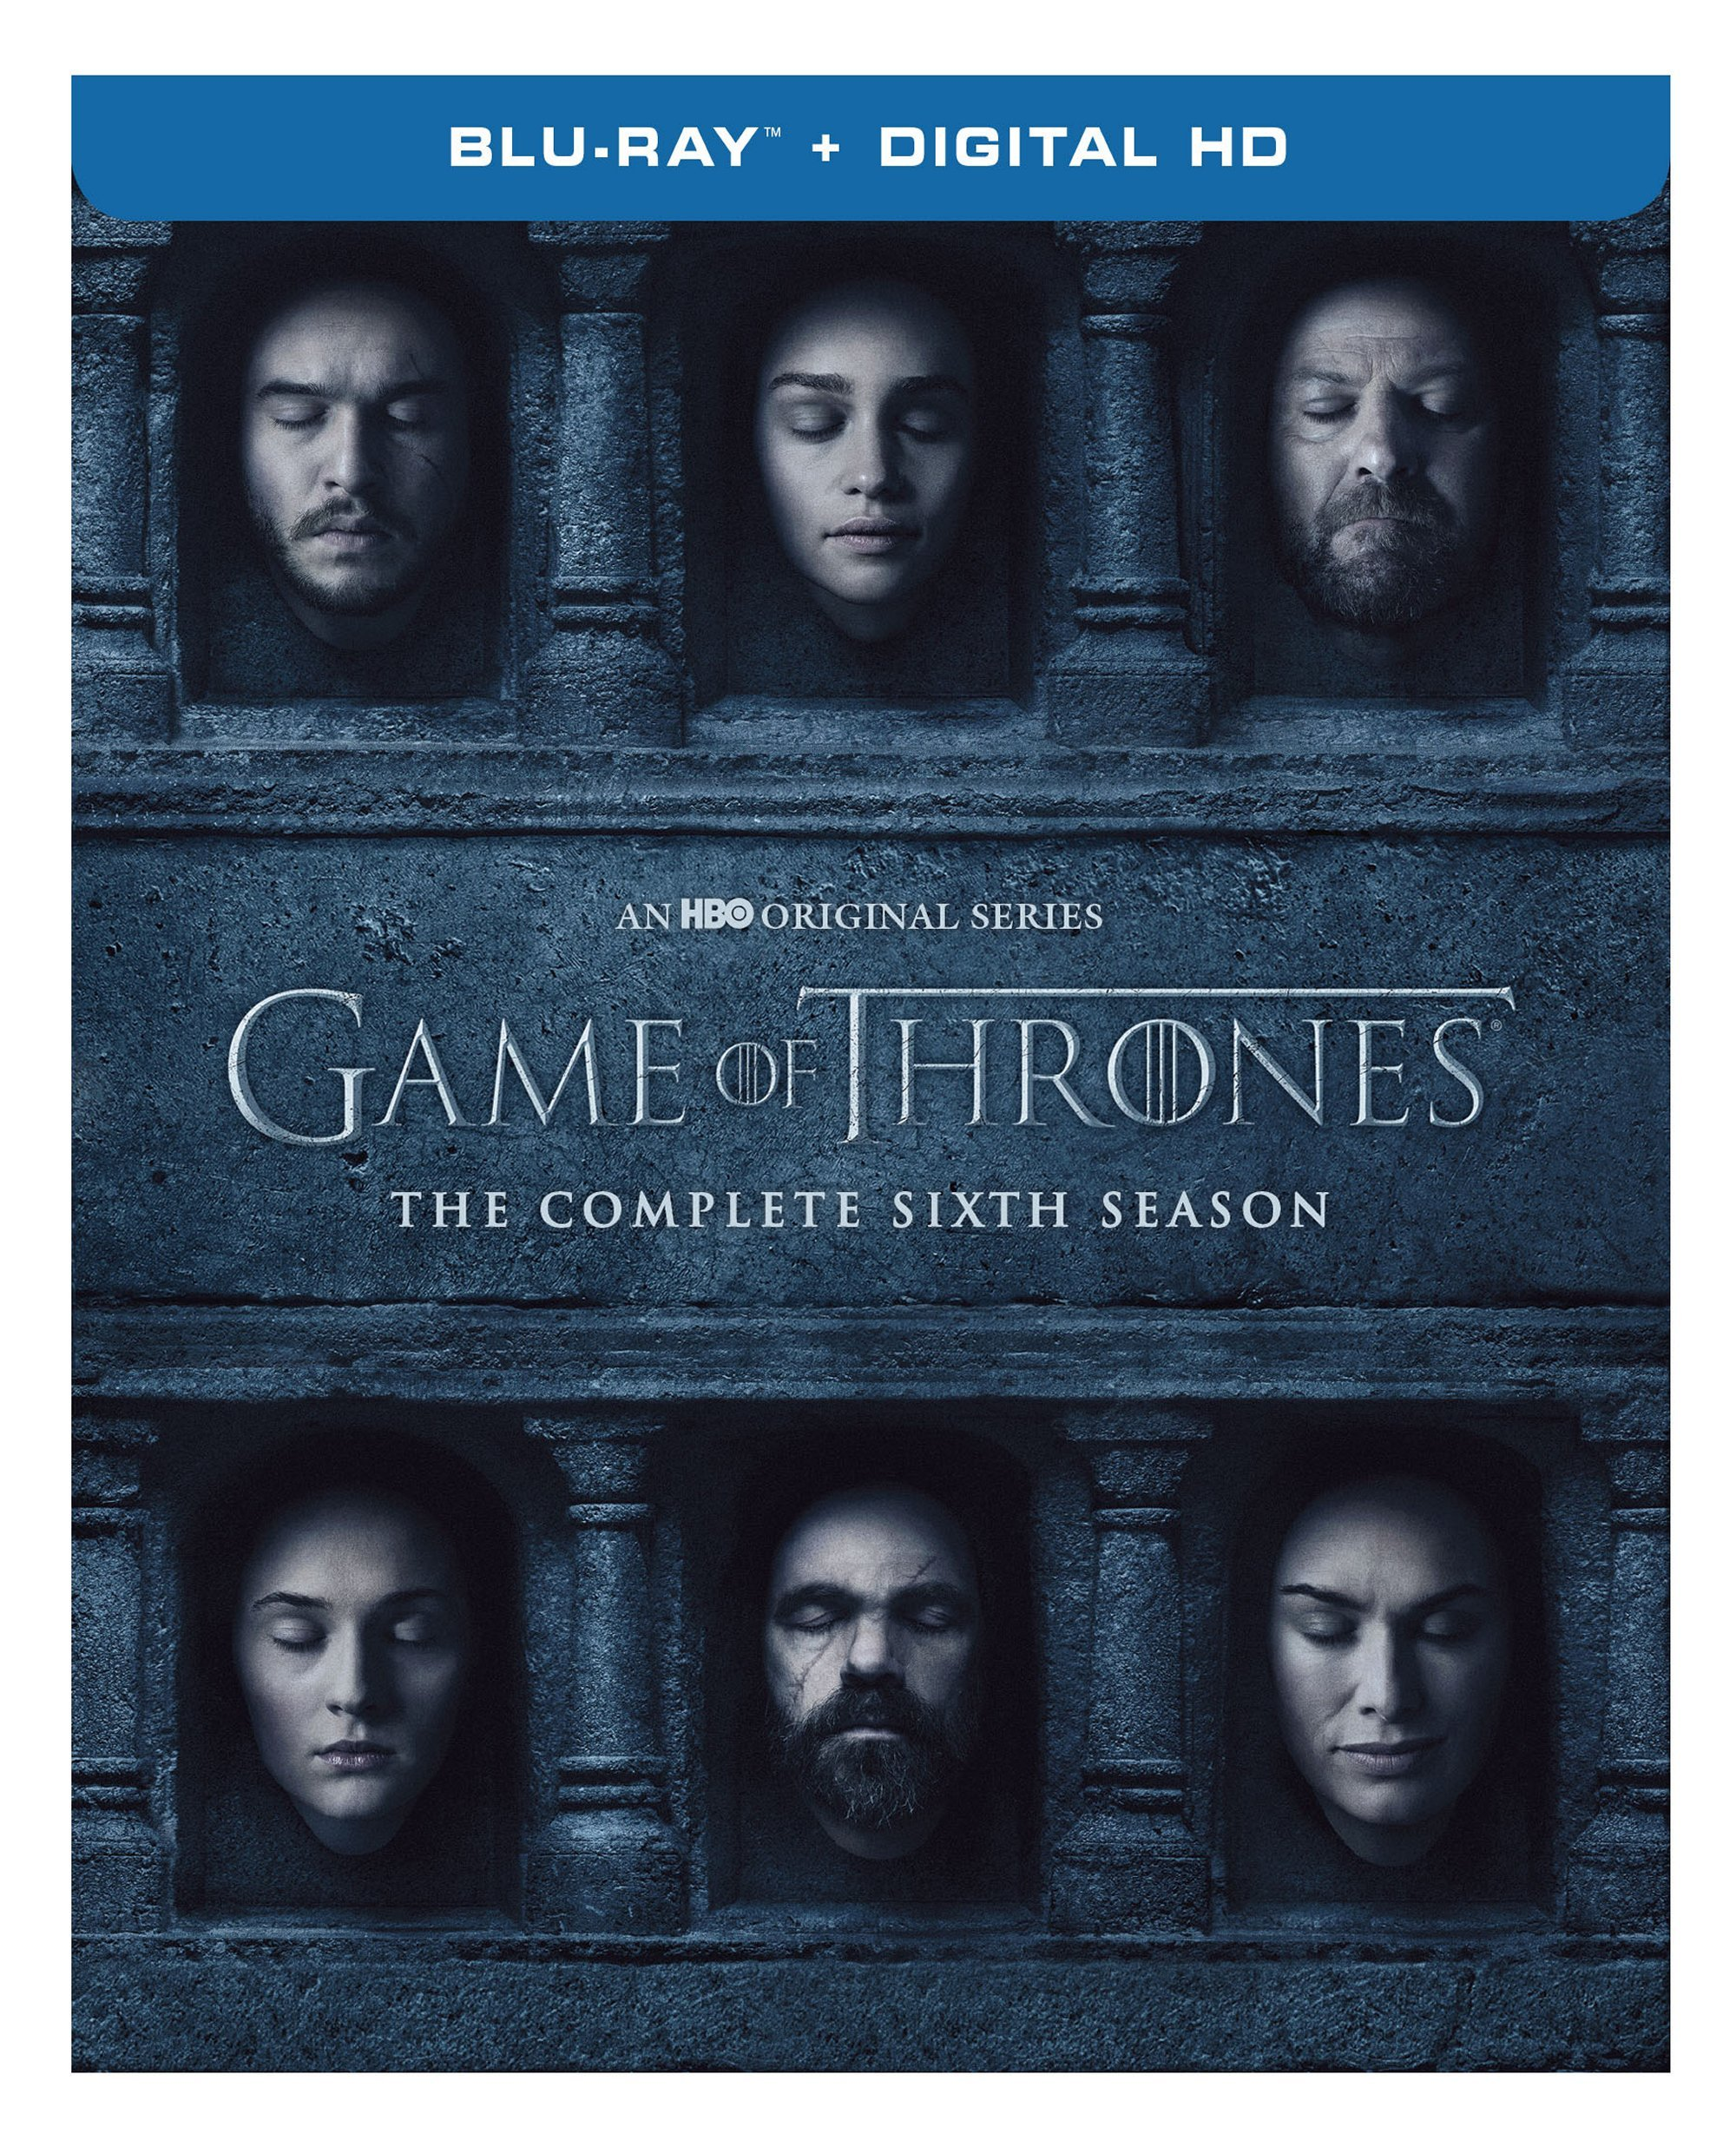 Blu-ray : Game of Thrones: The Complete Sixth Season (Ultraviolet Digital Copy, Slipsleeve Packaging, Digipack Packaging, Digitally Mastered in HD)